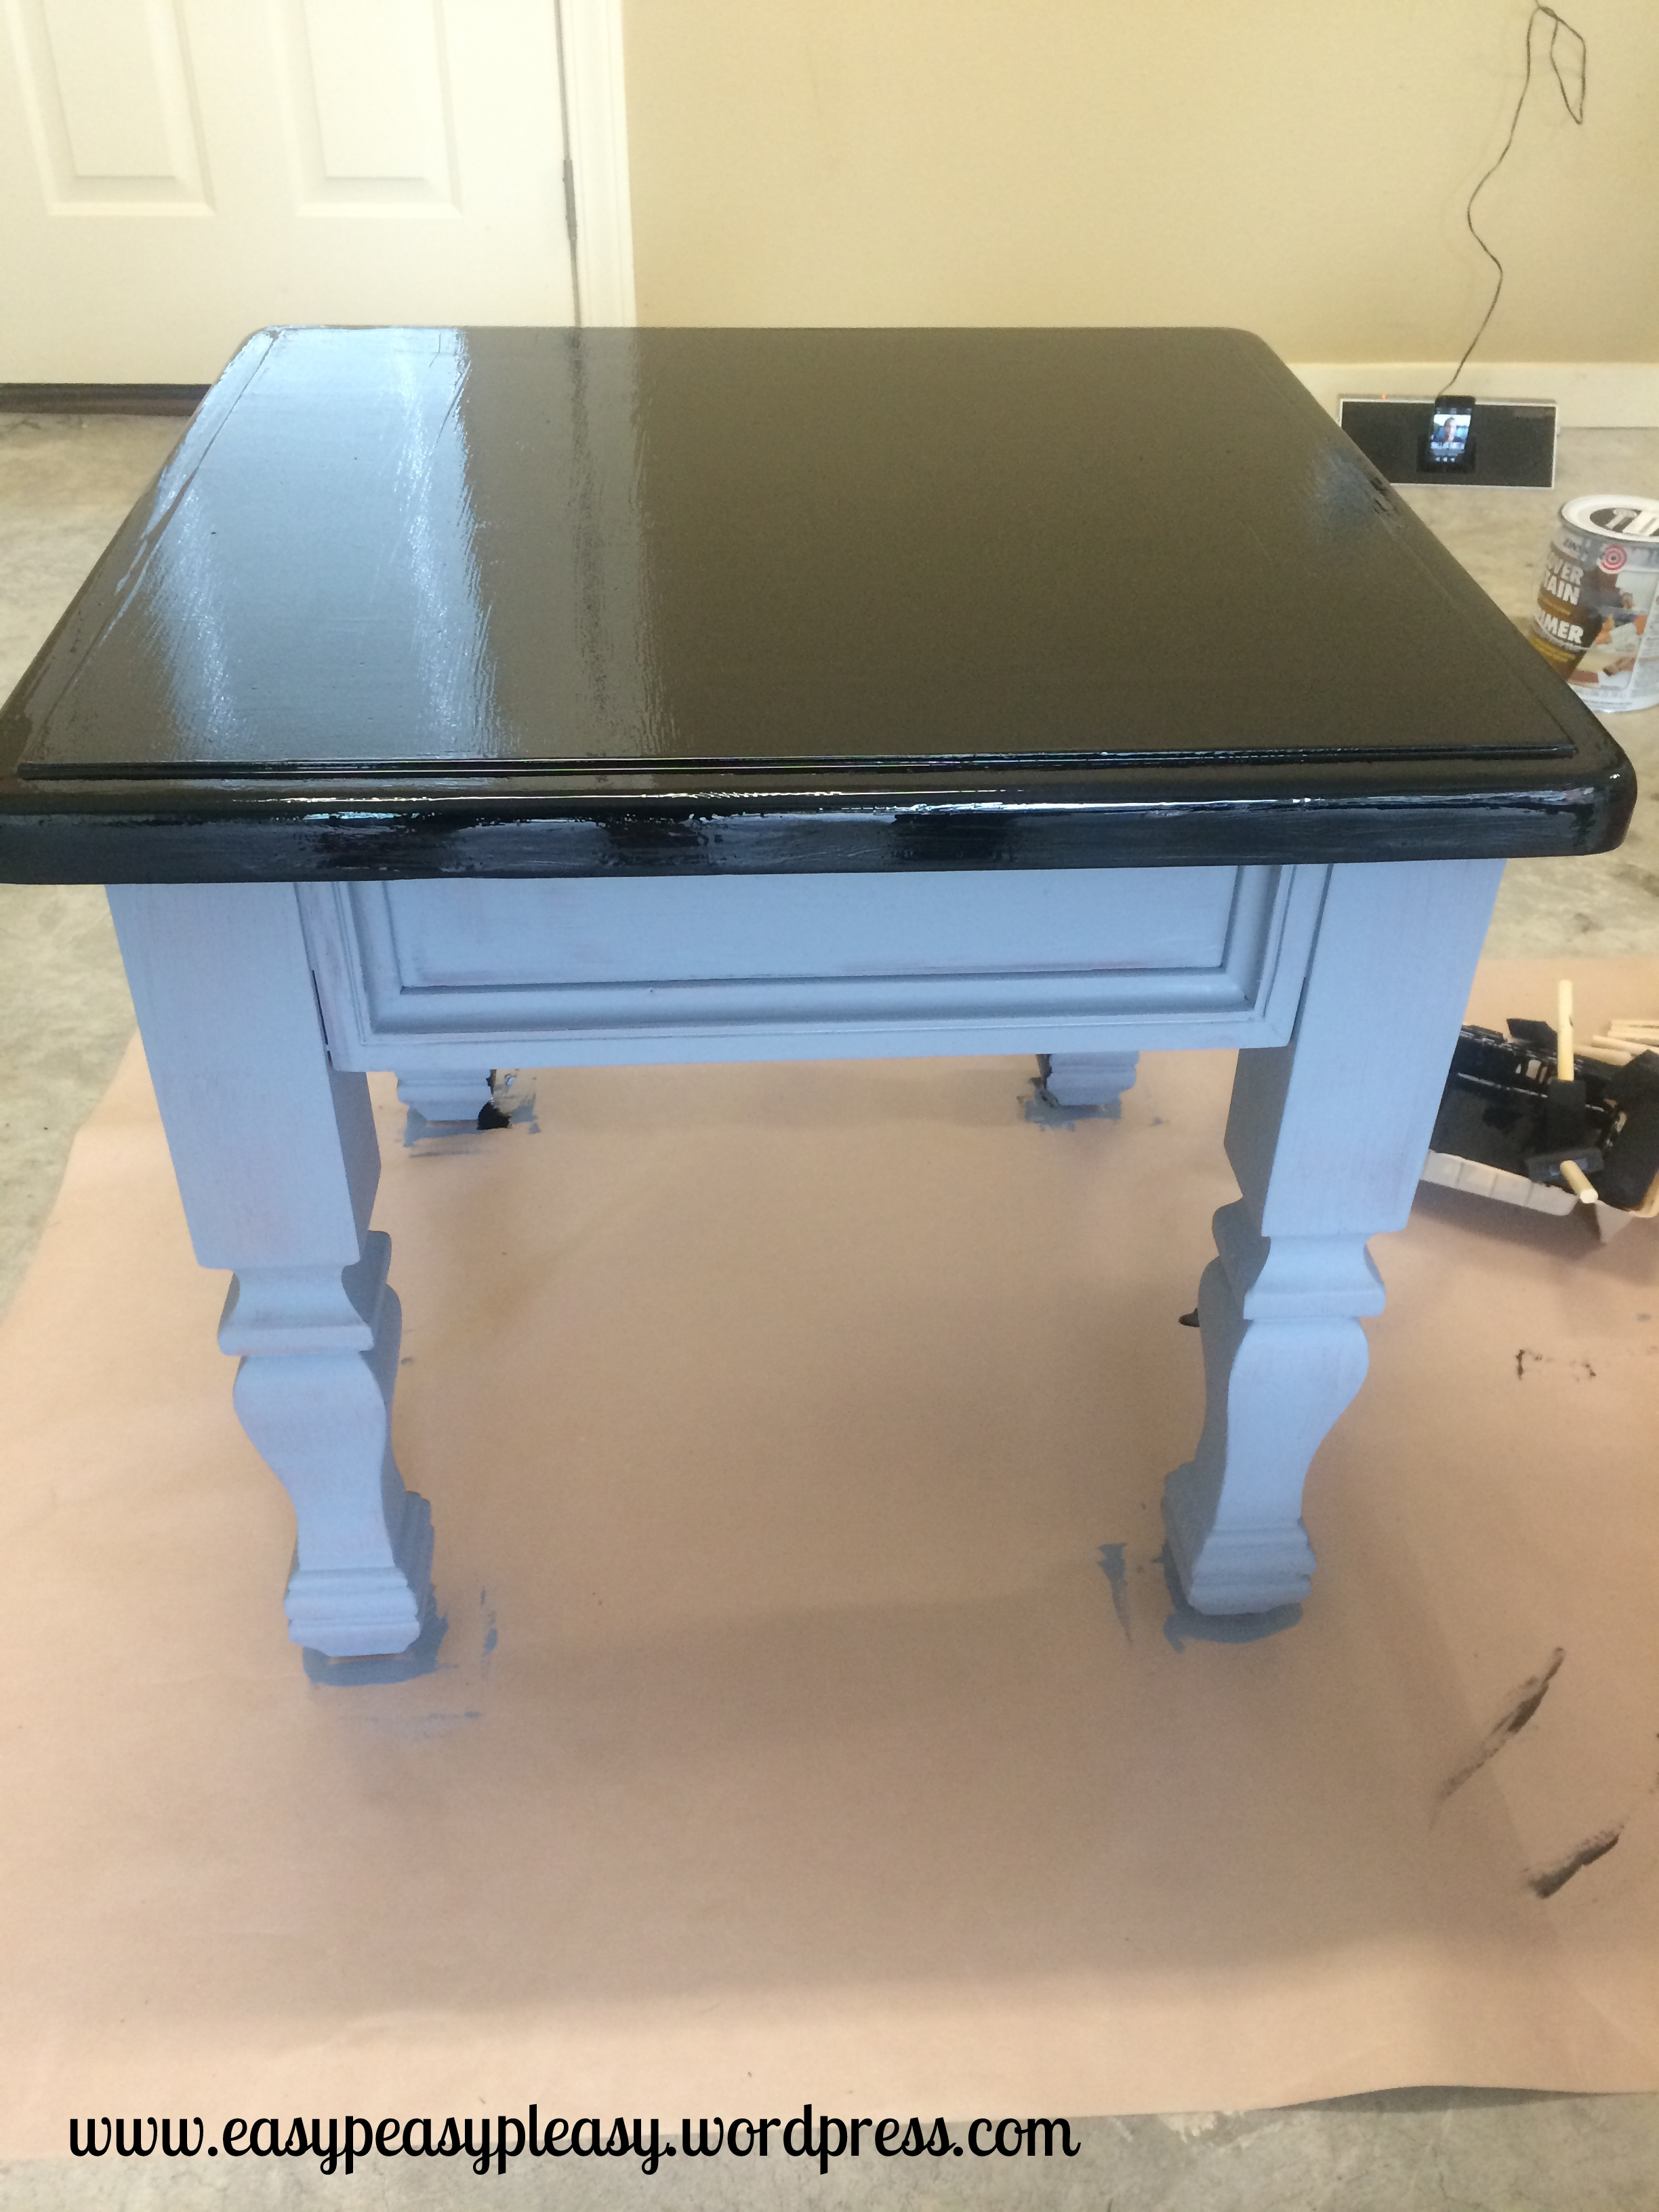 No need to sand furniture before painting. Check out https://easypeasypleasy.com to find out more.